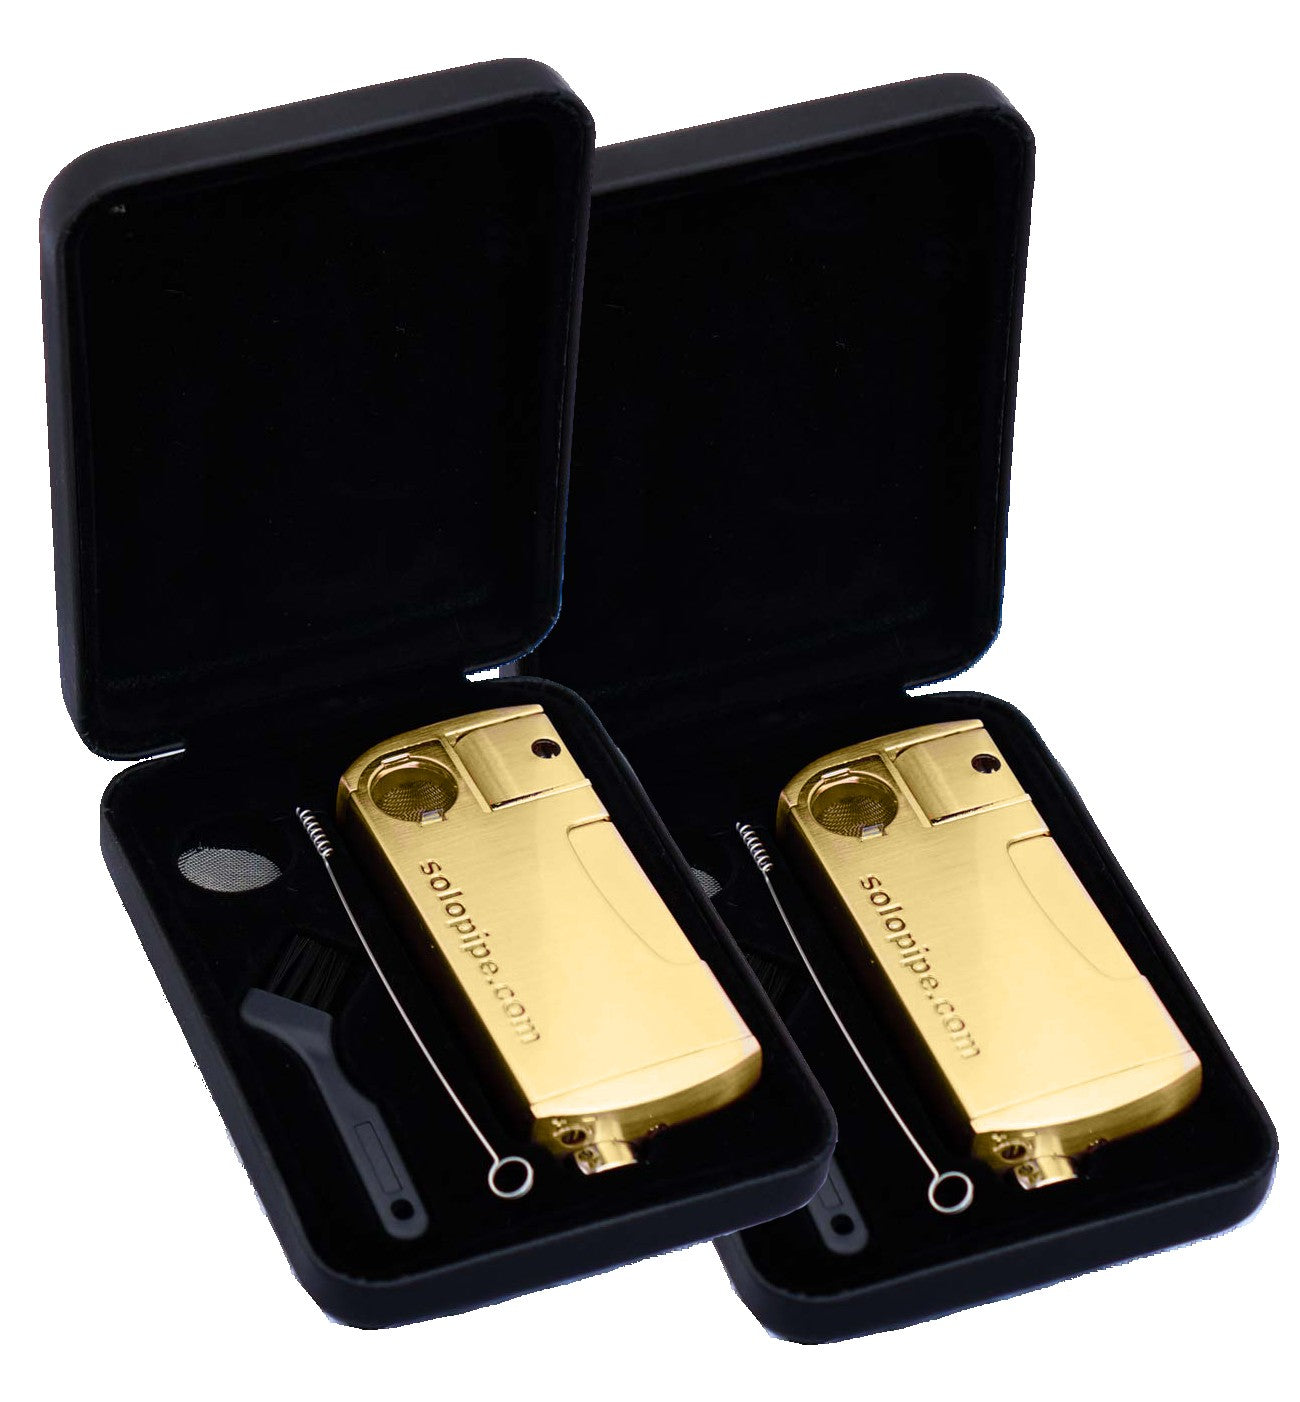 2 Pack The Original Refillable SoloPipe® - Opulent Gold freeshipping - solopipe